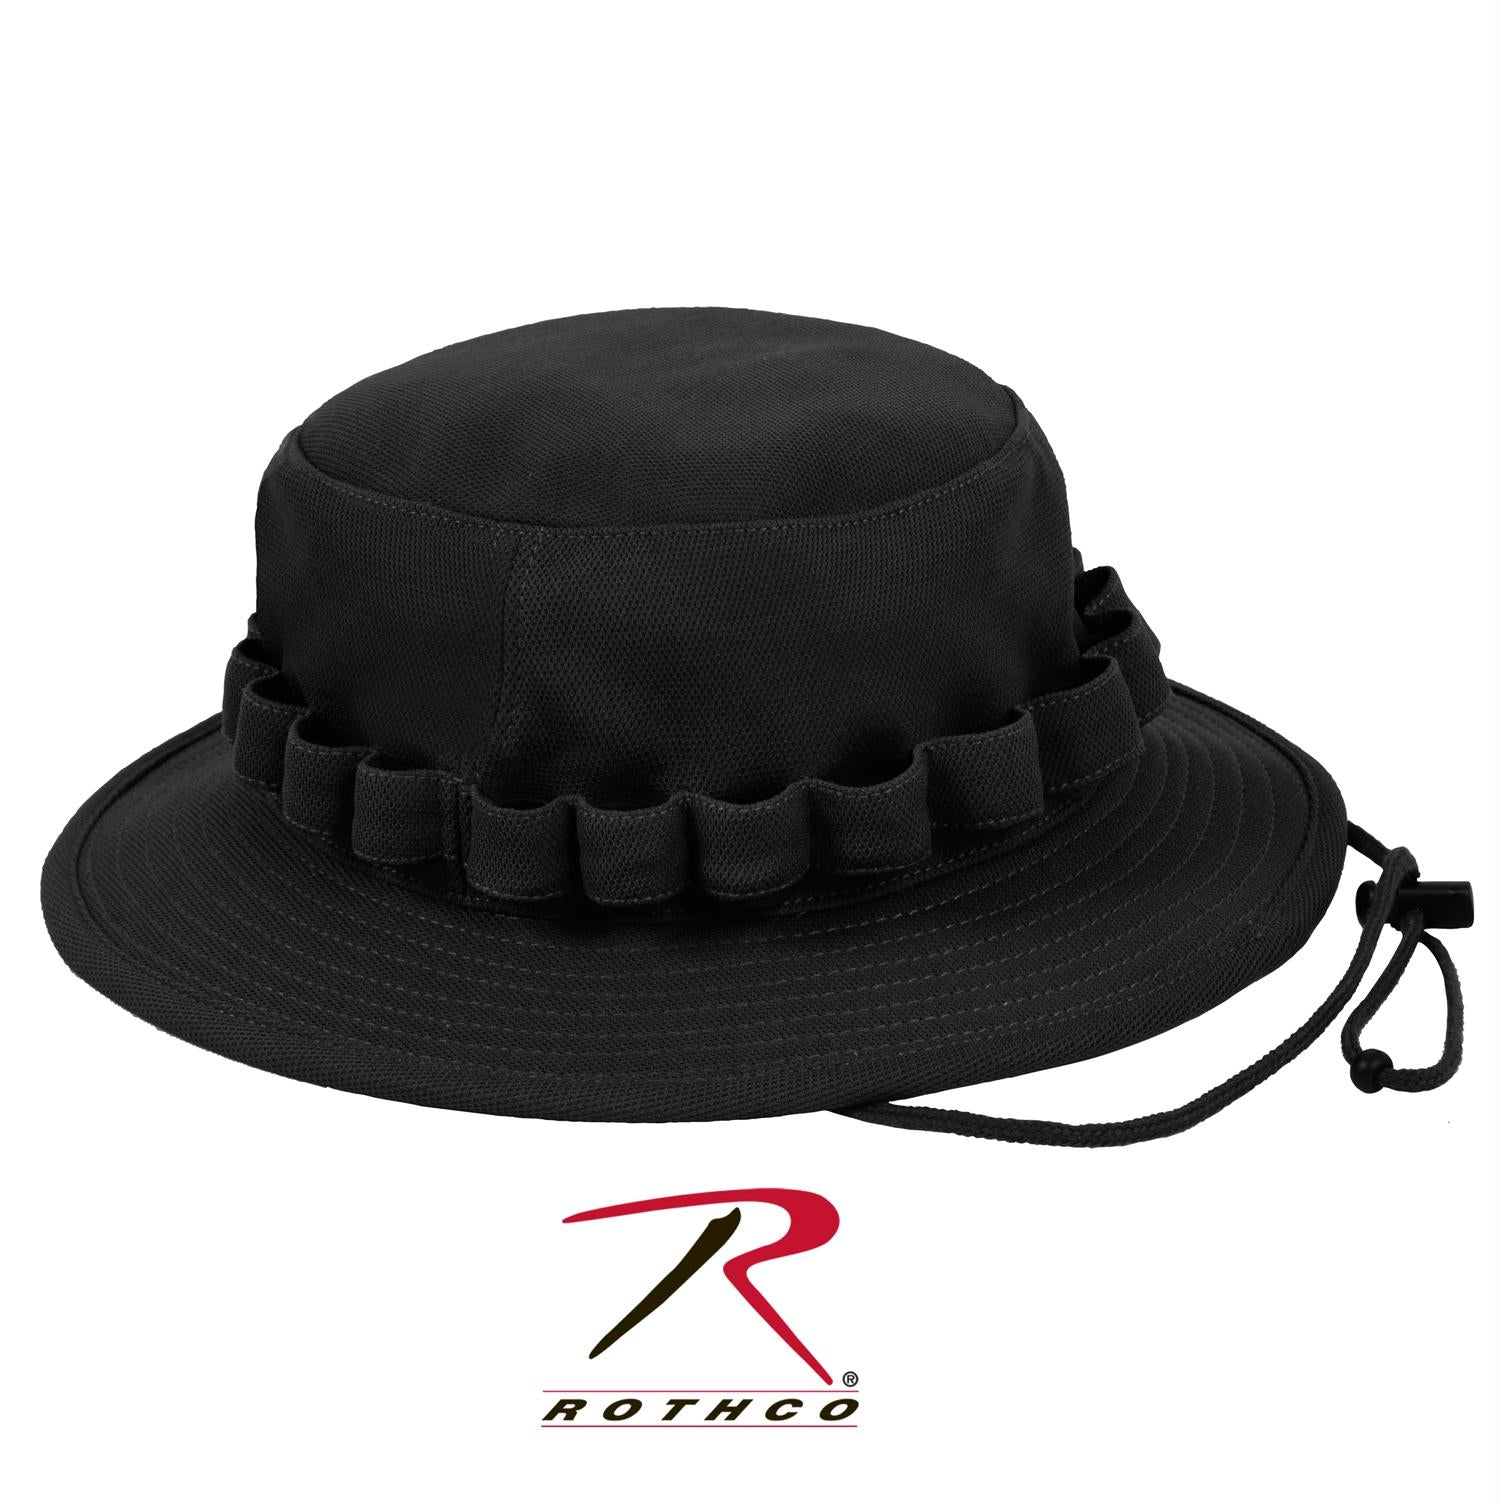 Rothco Coolweight Boonie Hat - Black / S/M